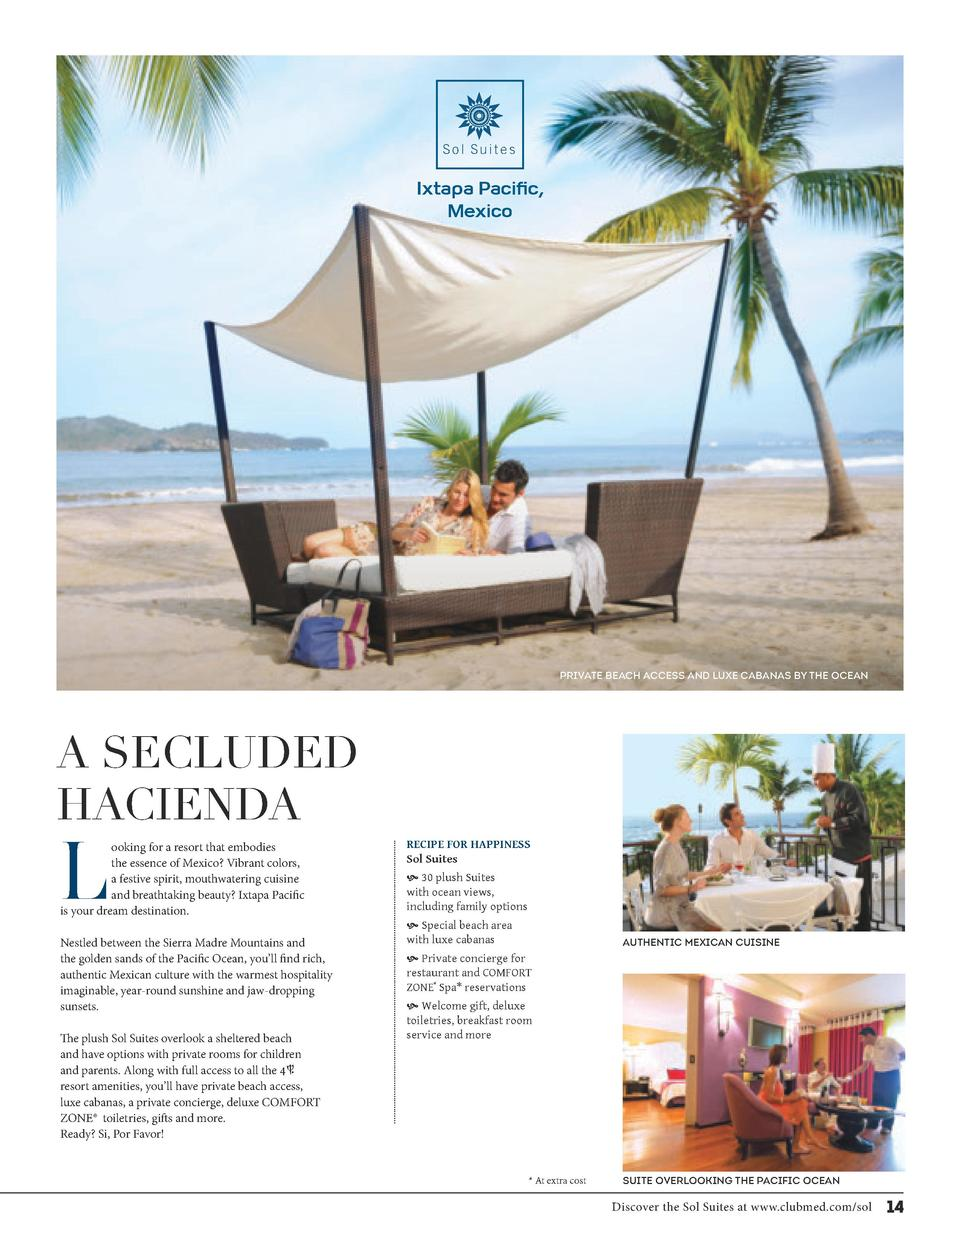 S o l Su i t e s  Ixtapa Pacific, Mexico  PRIVATE BEACH ACCESS AND LUXE CABANAS BY THE OCEAN  A SECLUDED HACIENDA  L  ooki...